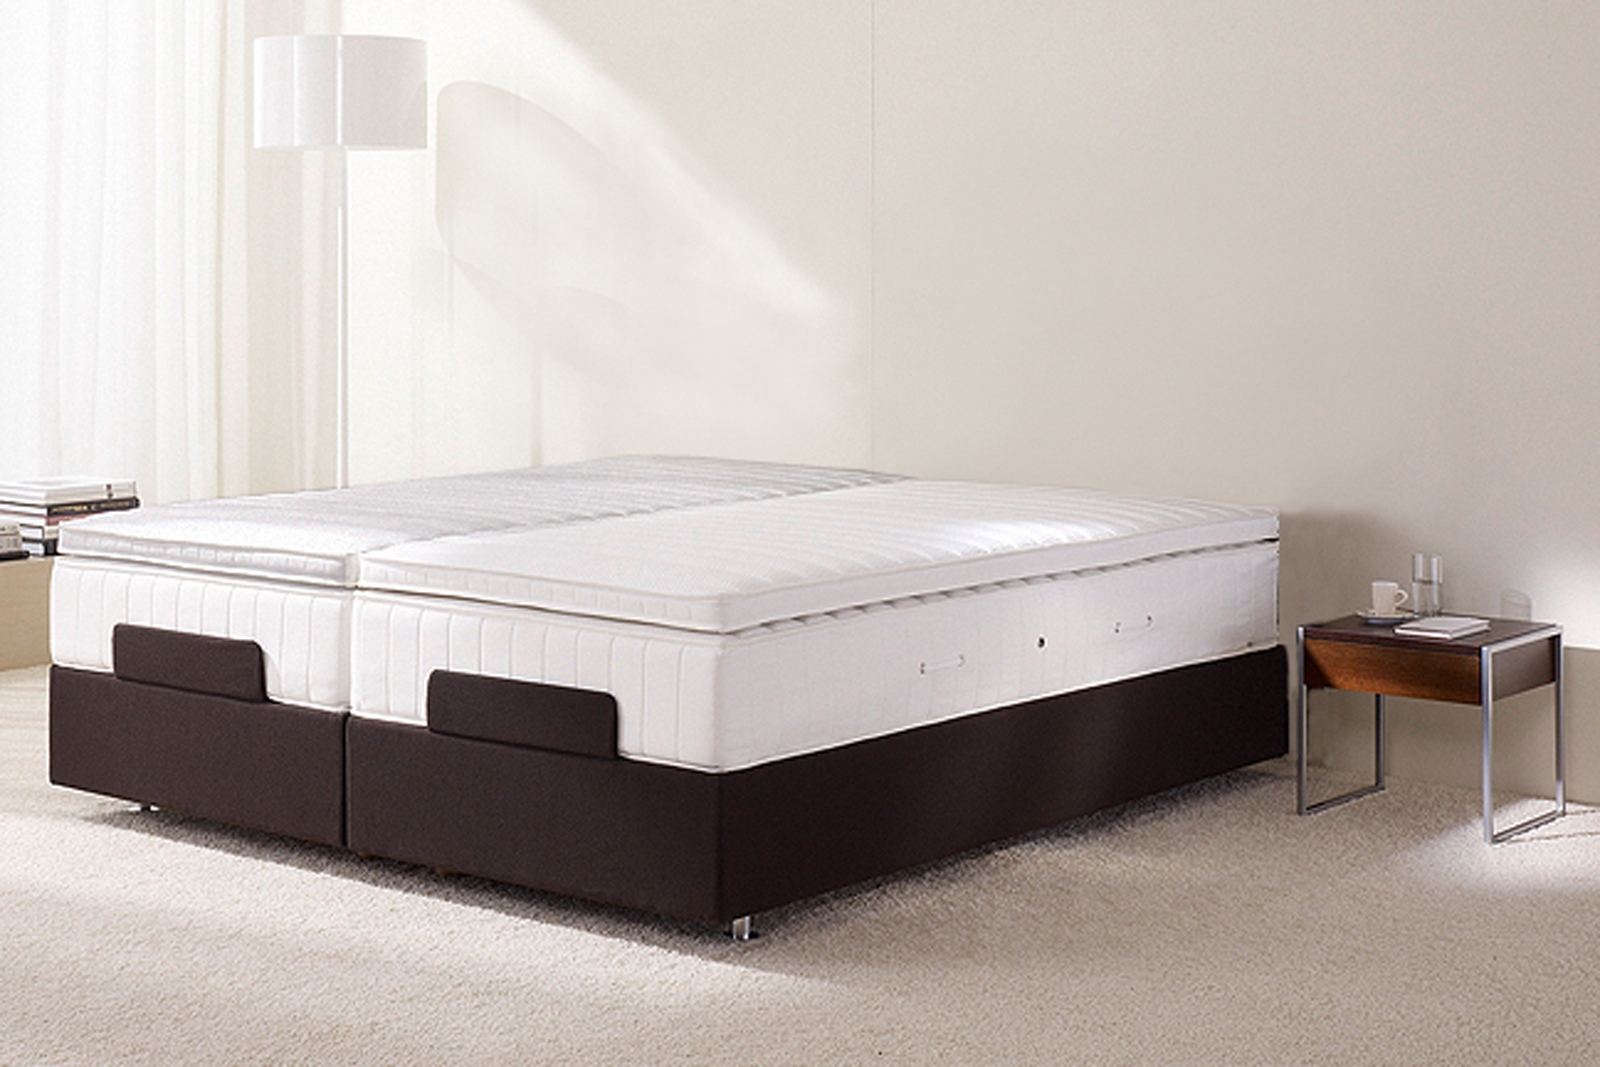 Upholstered Platform Bed Frame No Headboard